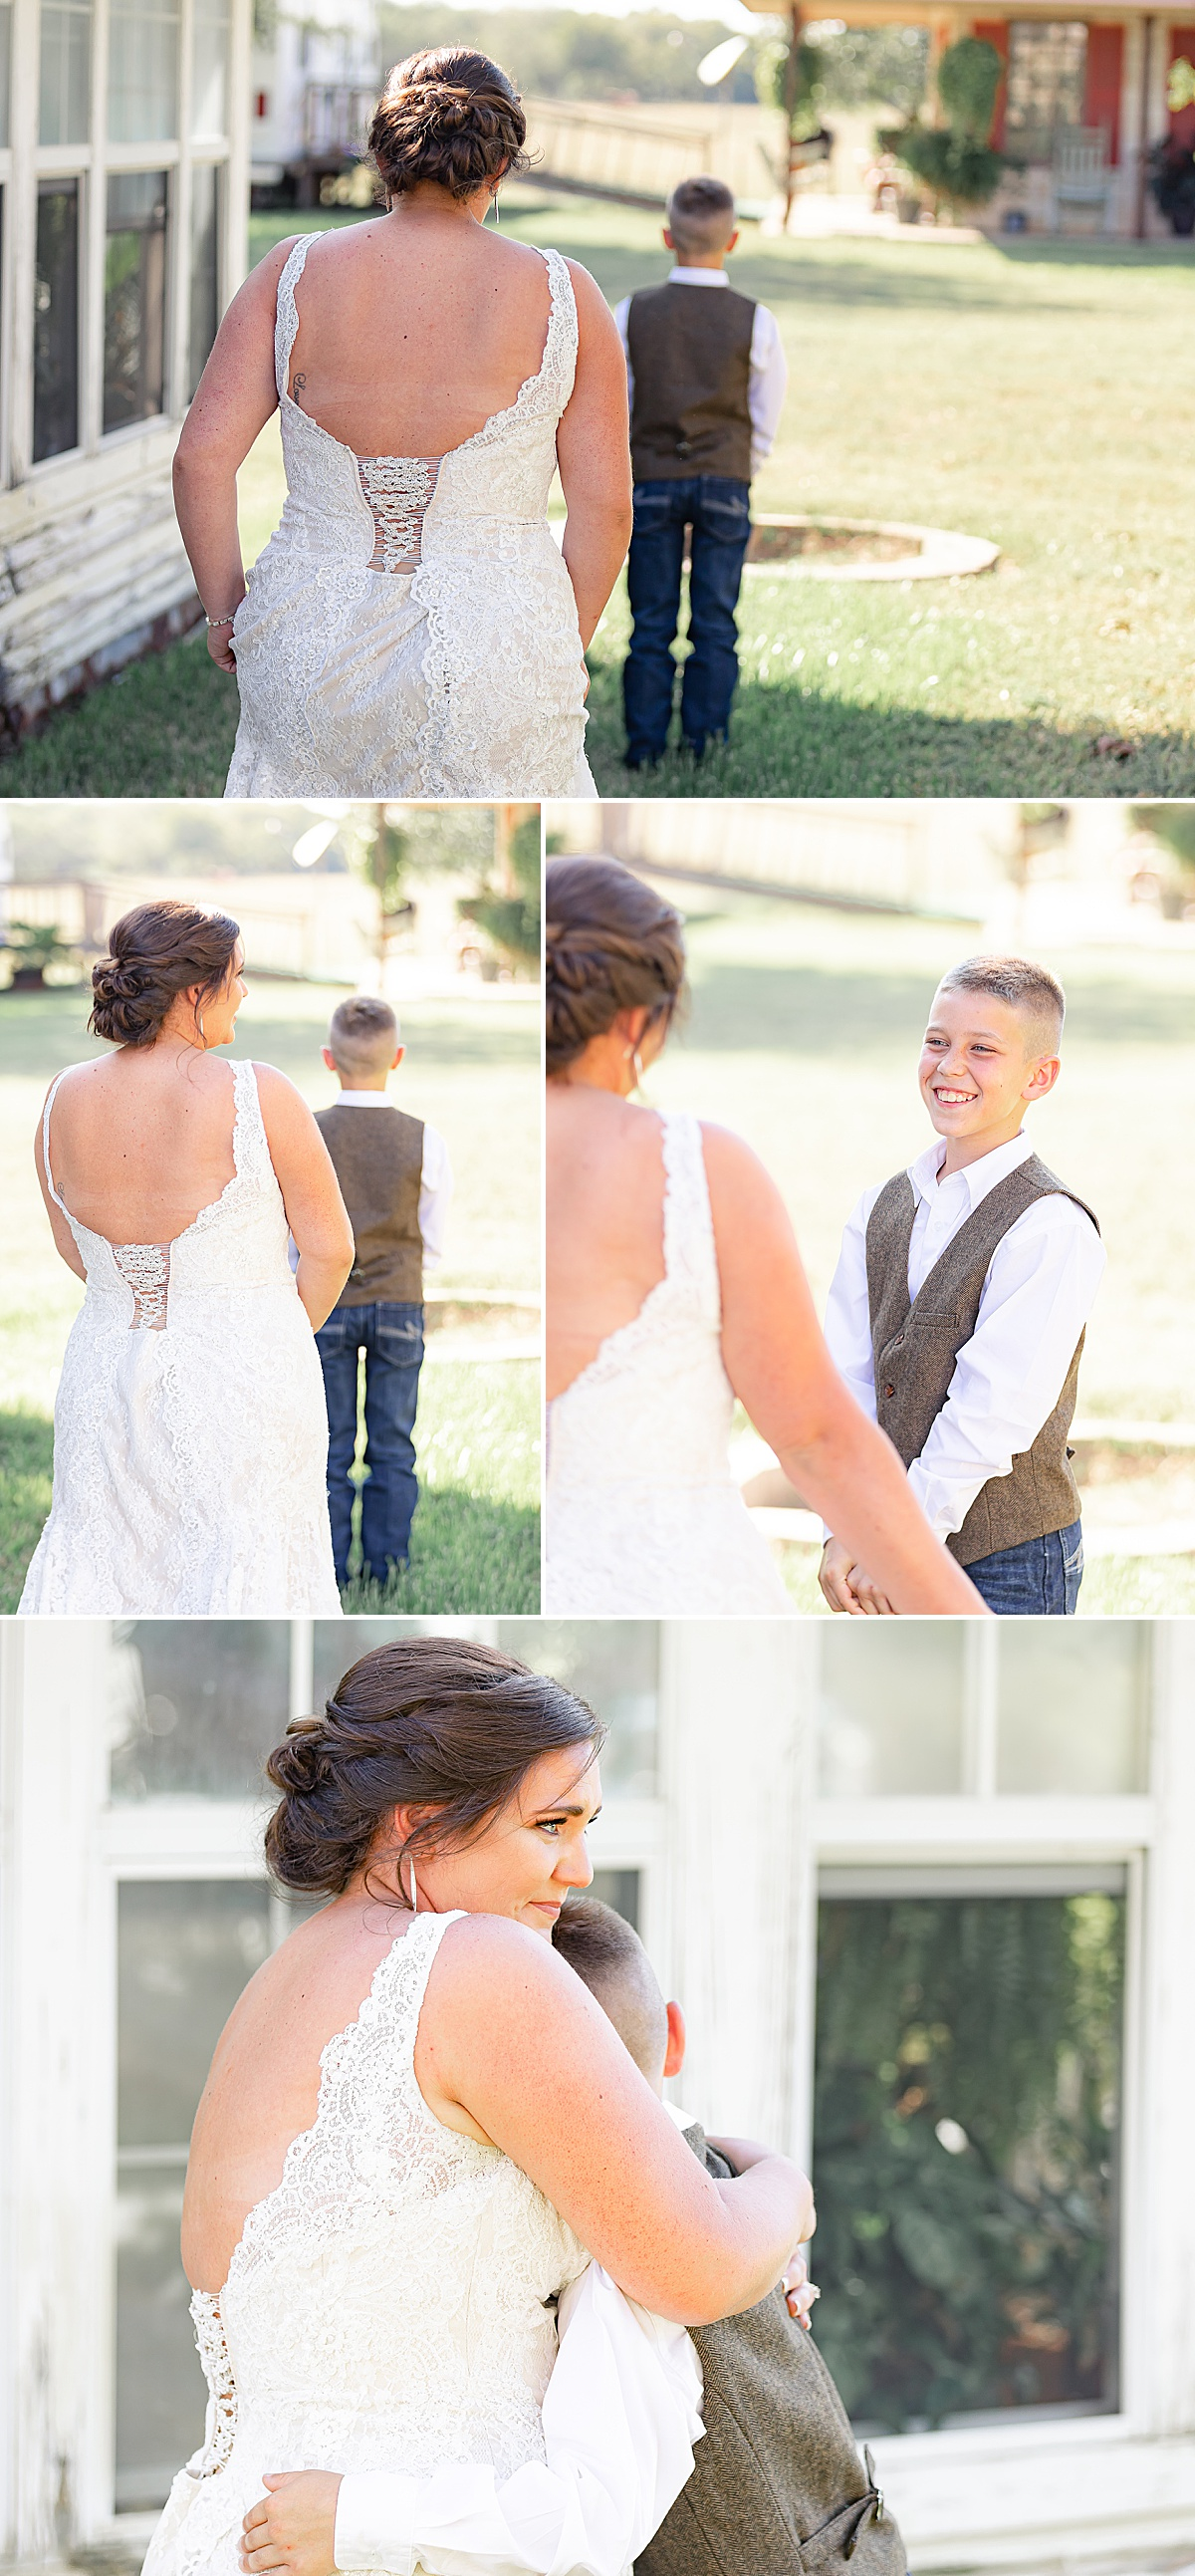 Rustic-Texas-Wedding-Hollow-Creek-Ranch-Carly-Barton-Photography_0171.jpg